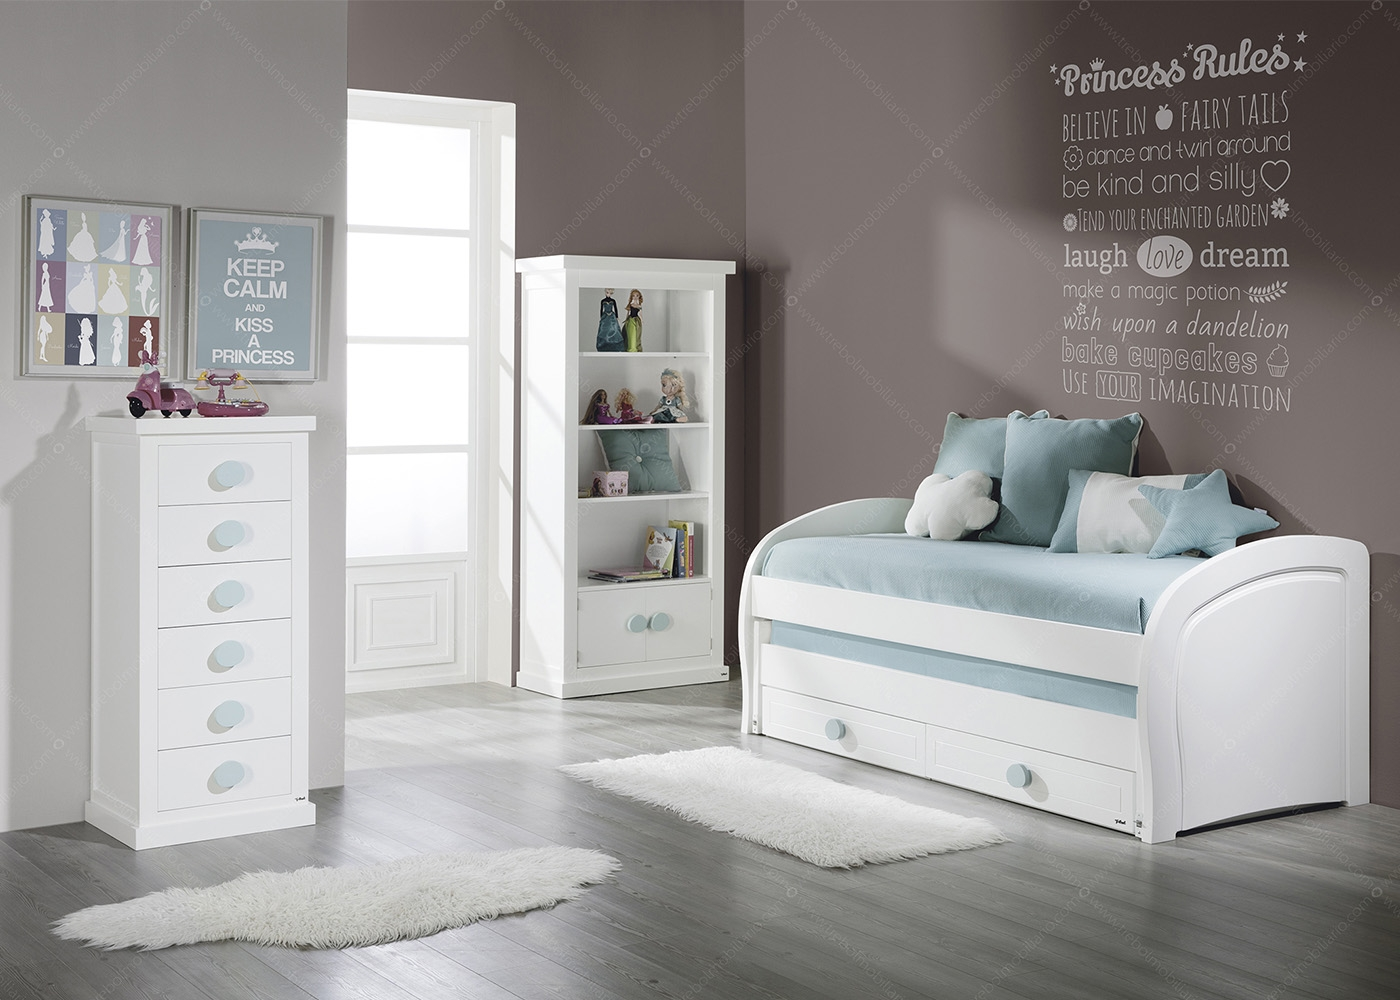 chambre modulable et volutive pour enfant et ado chez ksl living. Black Bedroom Furniture Sets. Home Design Ideas